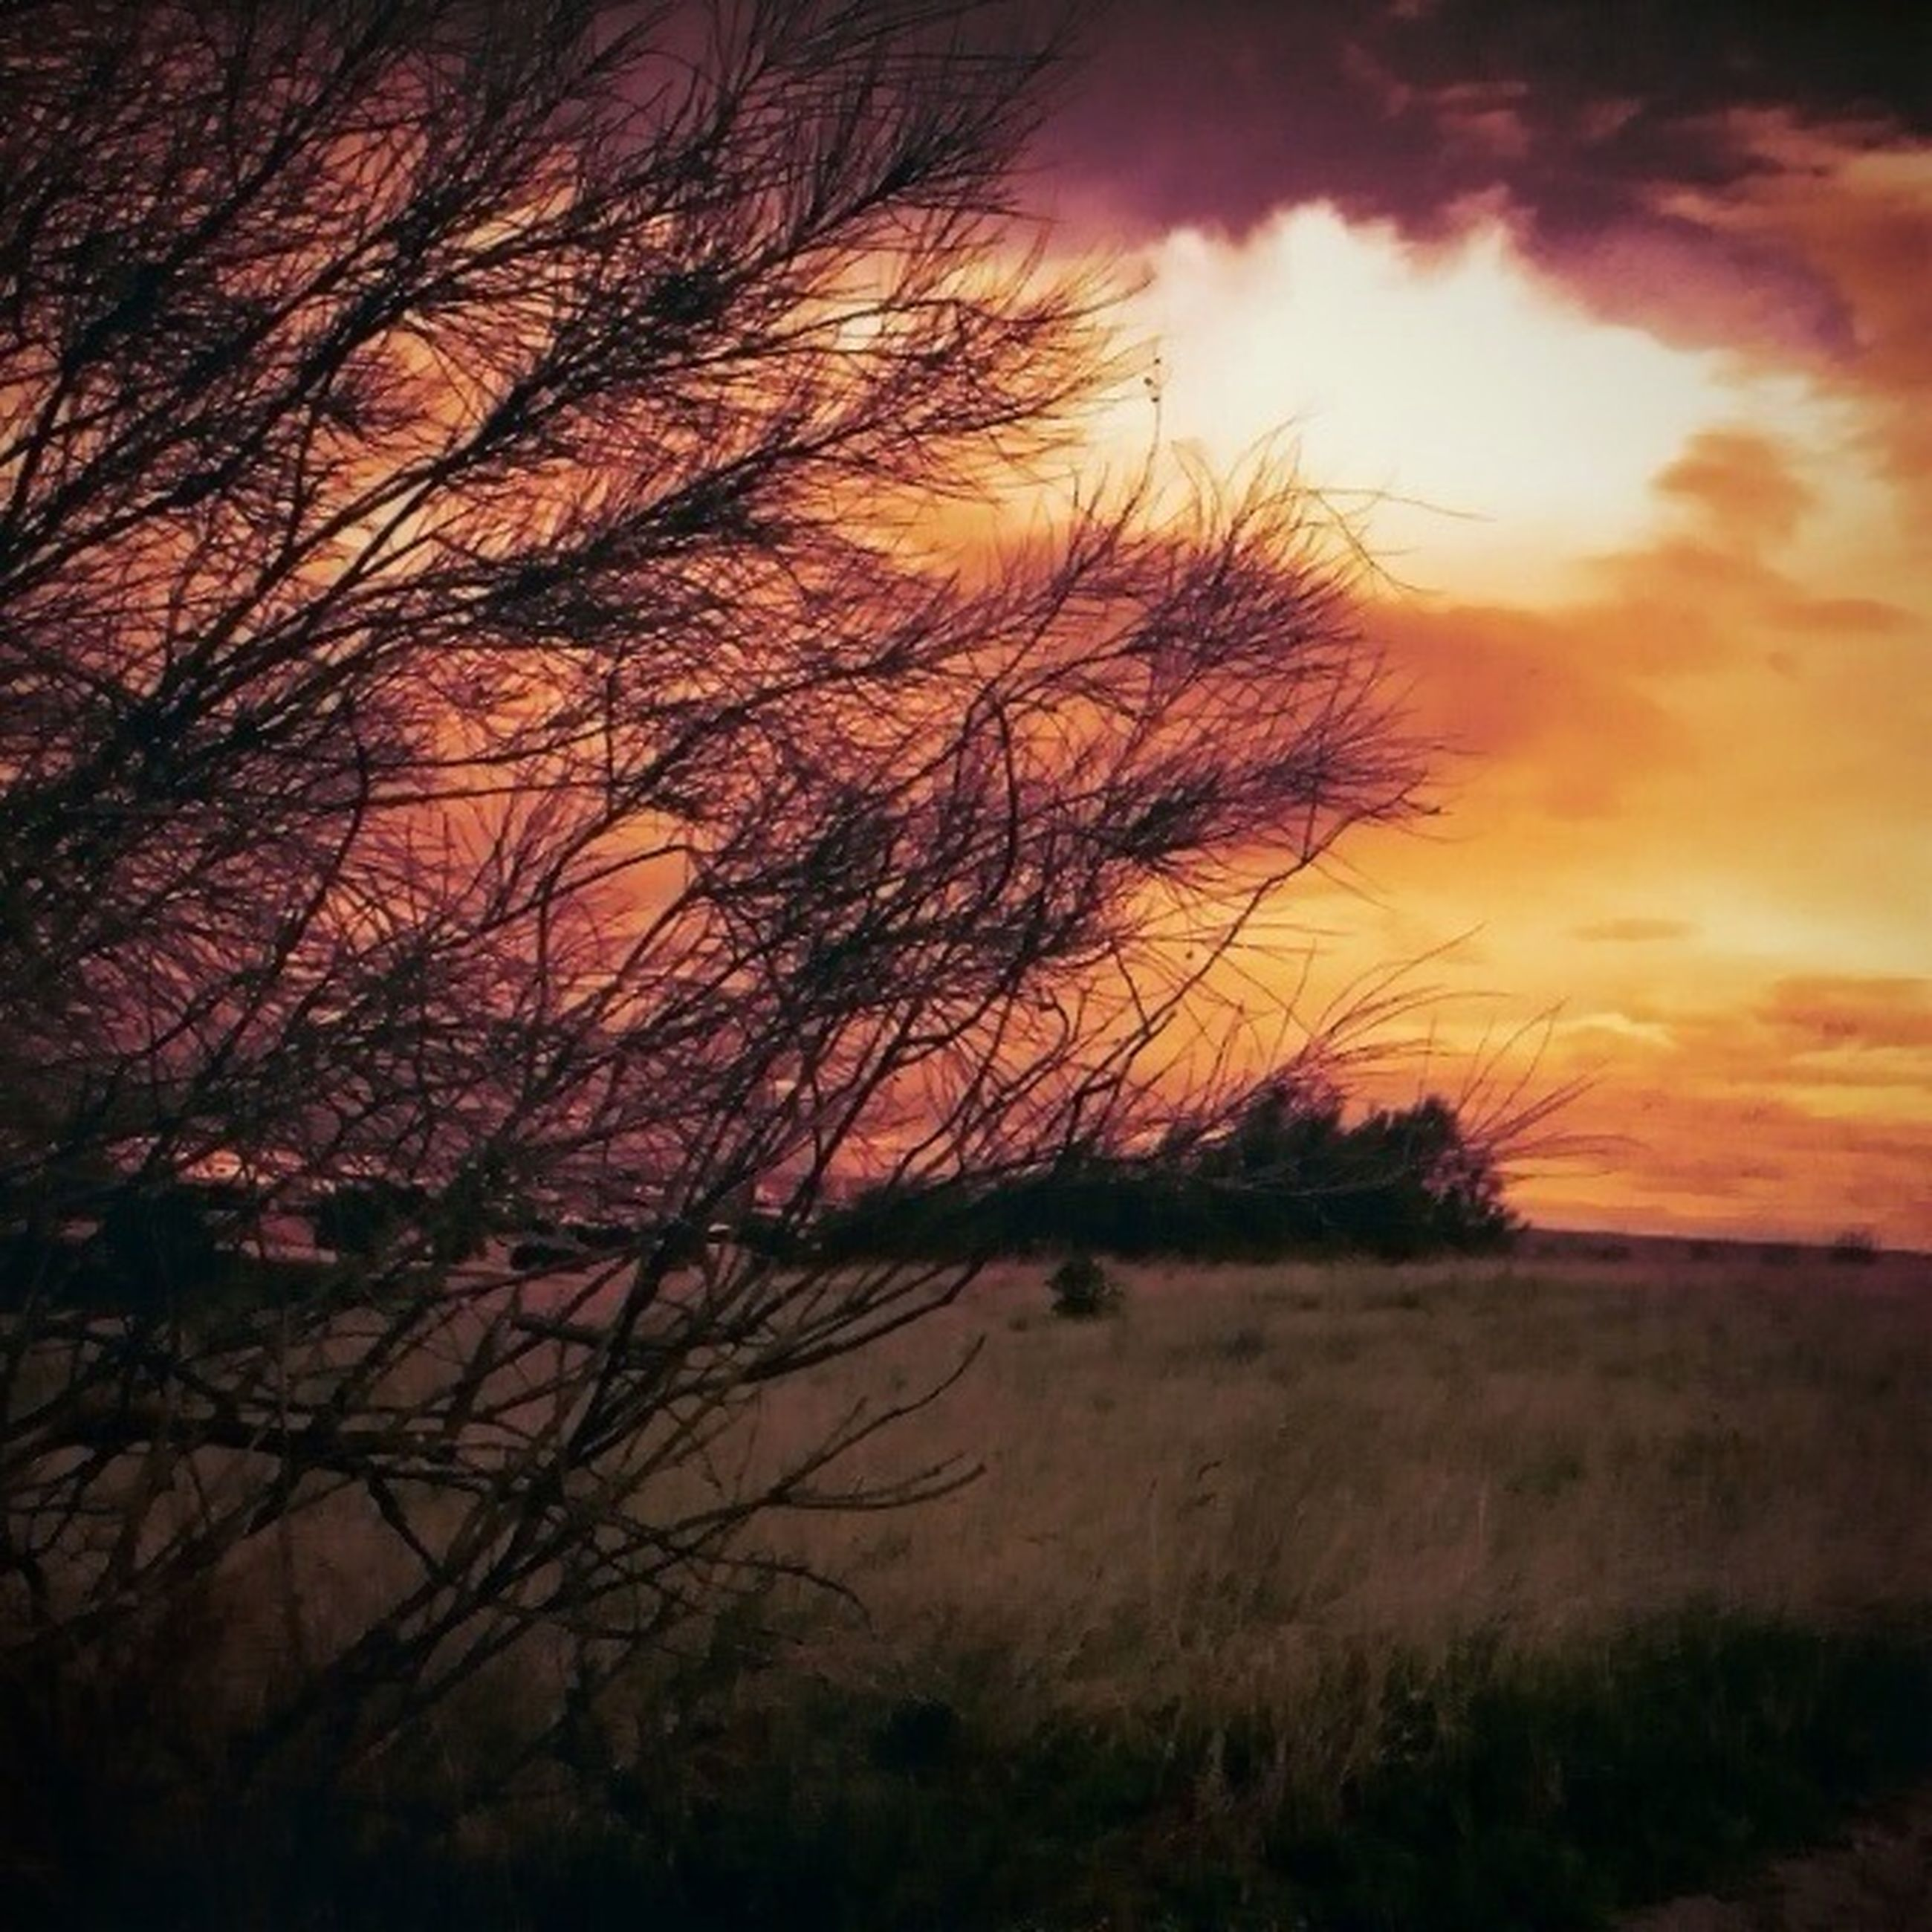 sunset, tranquility, tranquil scene, sky, silhouette, bare tree, scenics, tree, beauty in nature, orange color, nature, branch, cloud - sky, landscape, idyllic, non-urban scene, field, dramatic sky, growth, outdoors